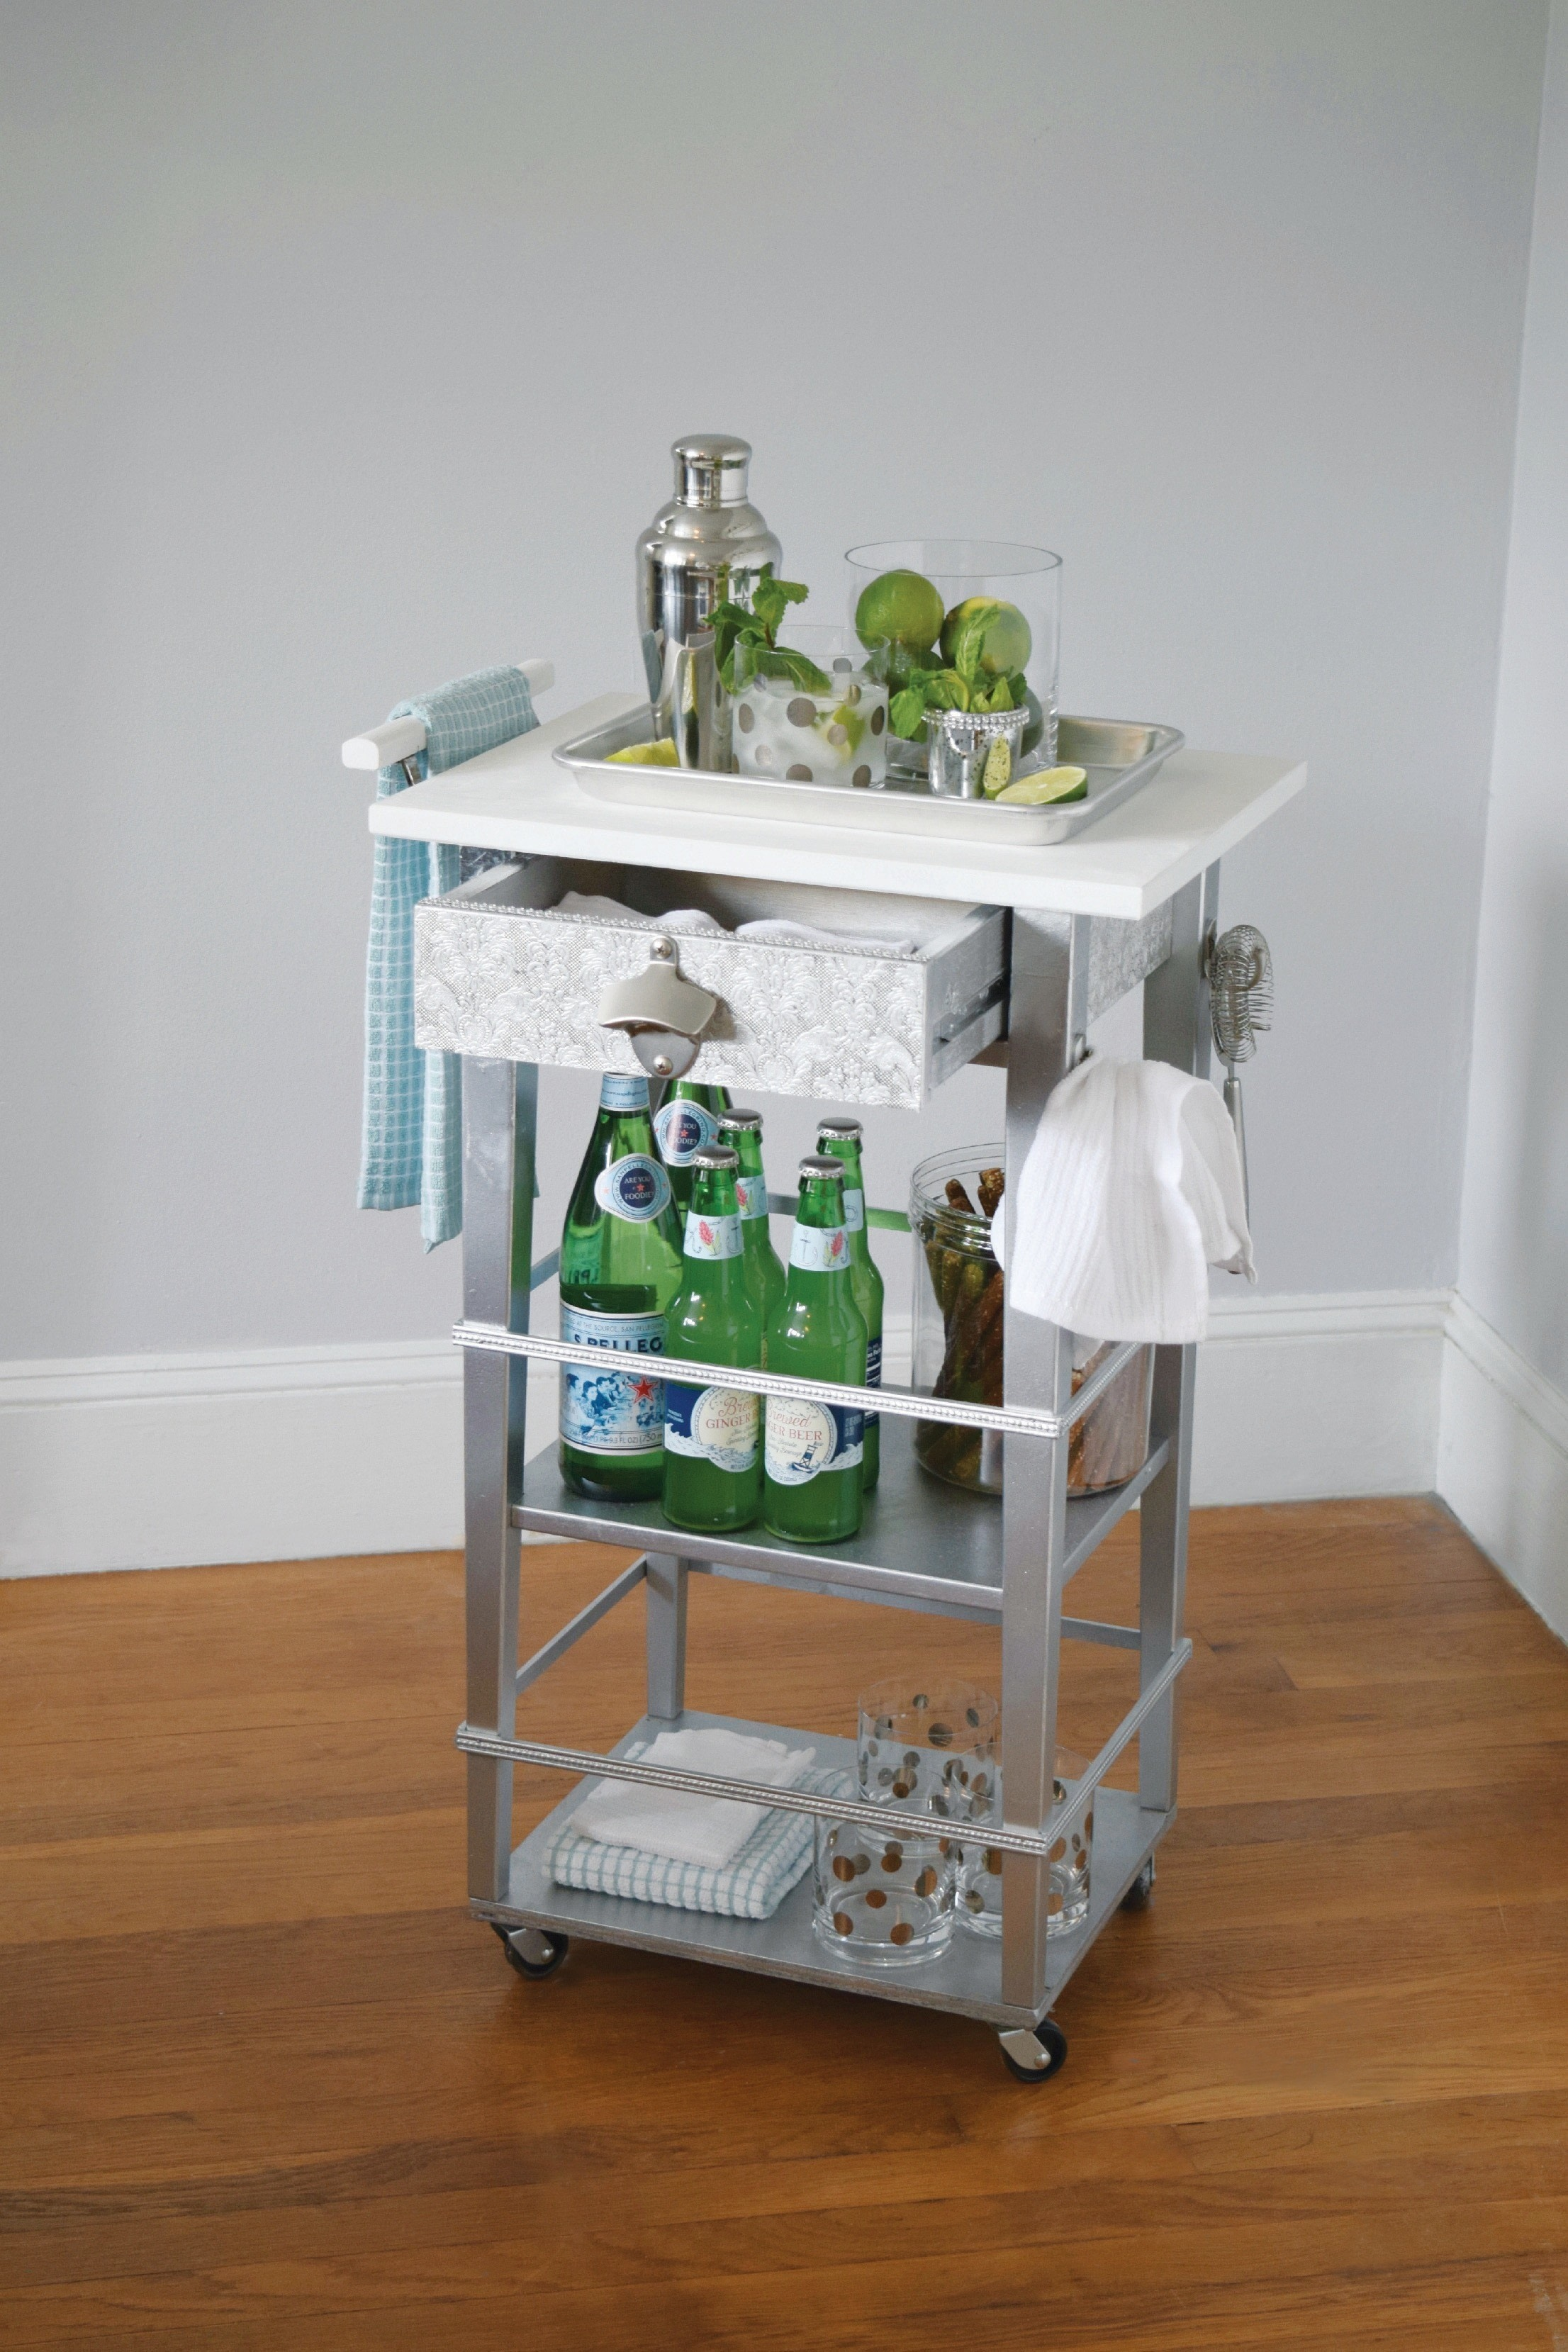 Rolling Bar Cart Extract From I Modify Ikea By Charlotte Rivers Elyse Major How To Make A Bar Cart